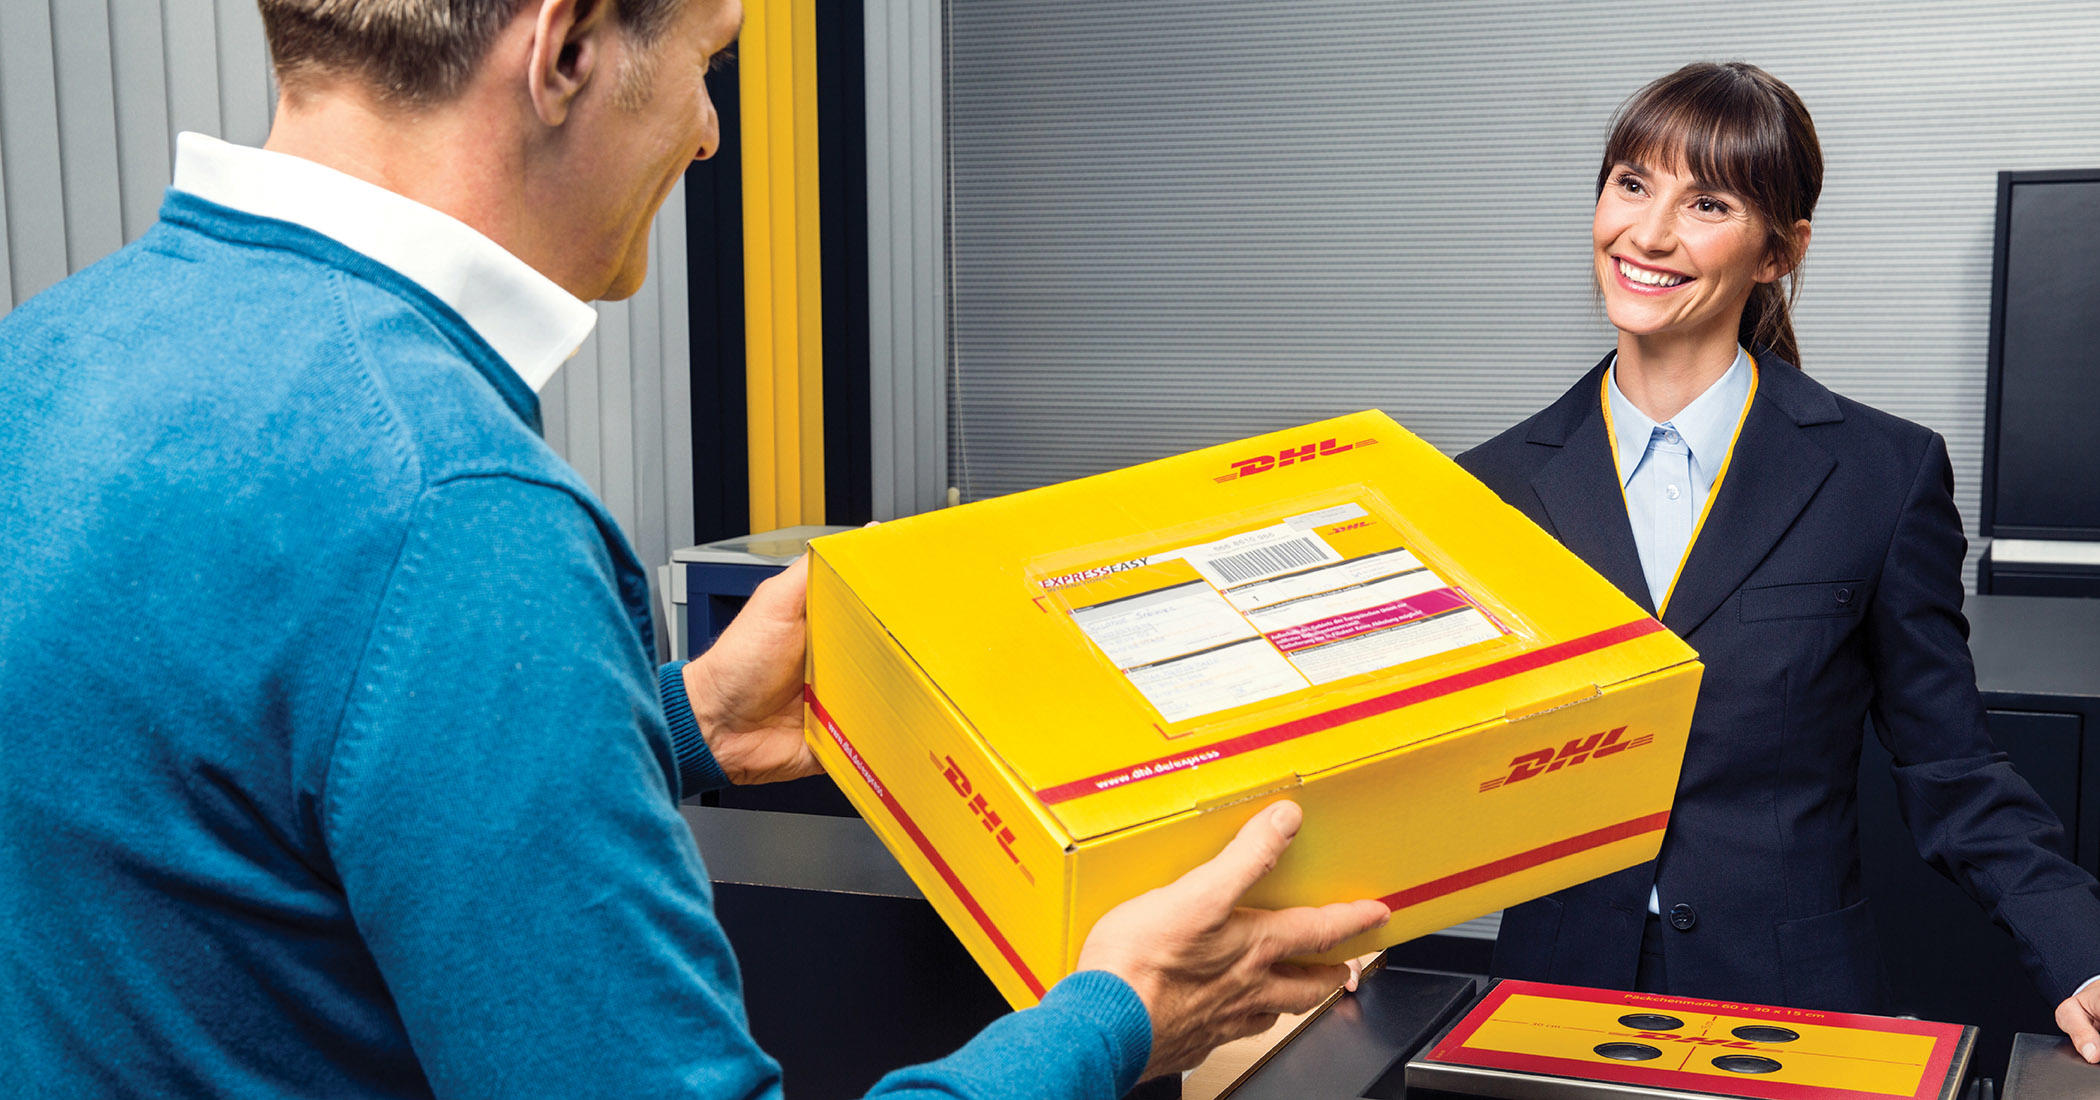 DHL Express Corporate Office image 2